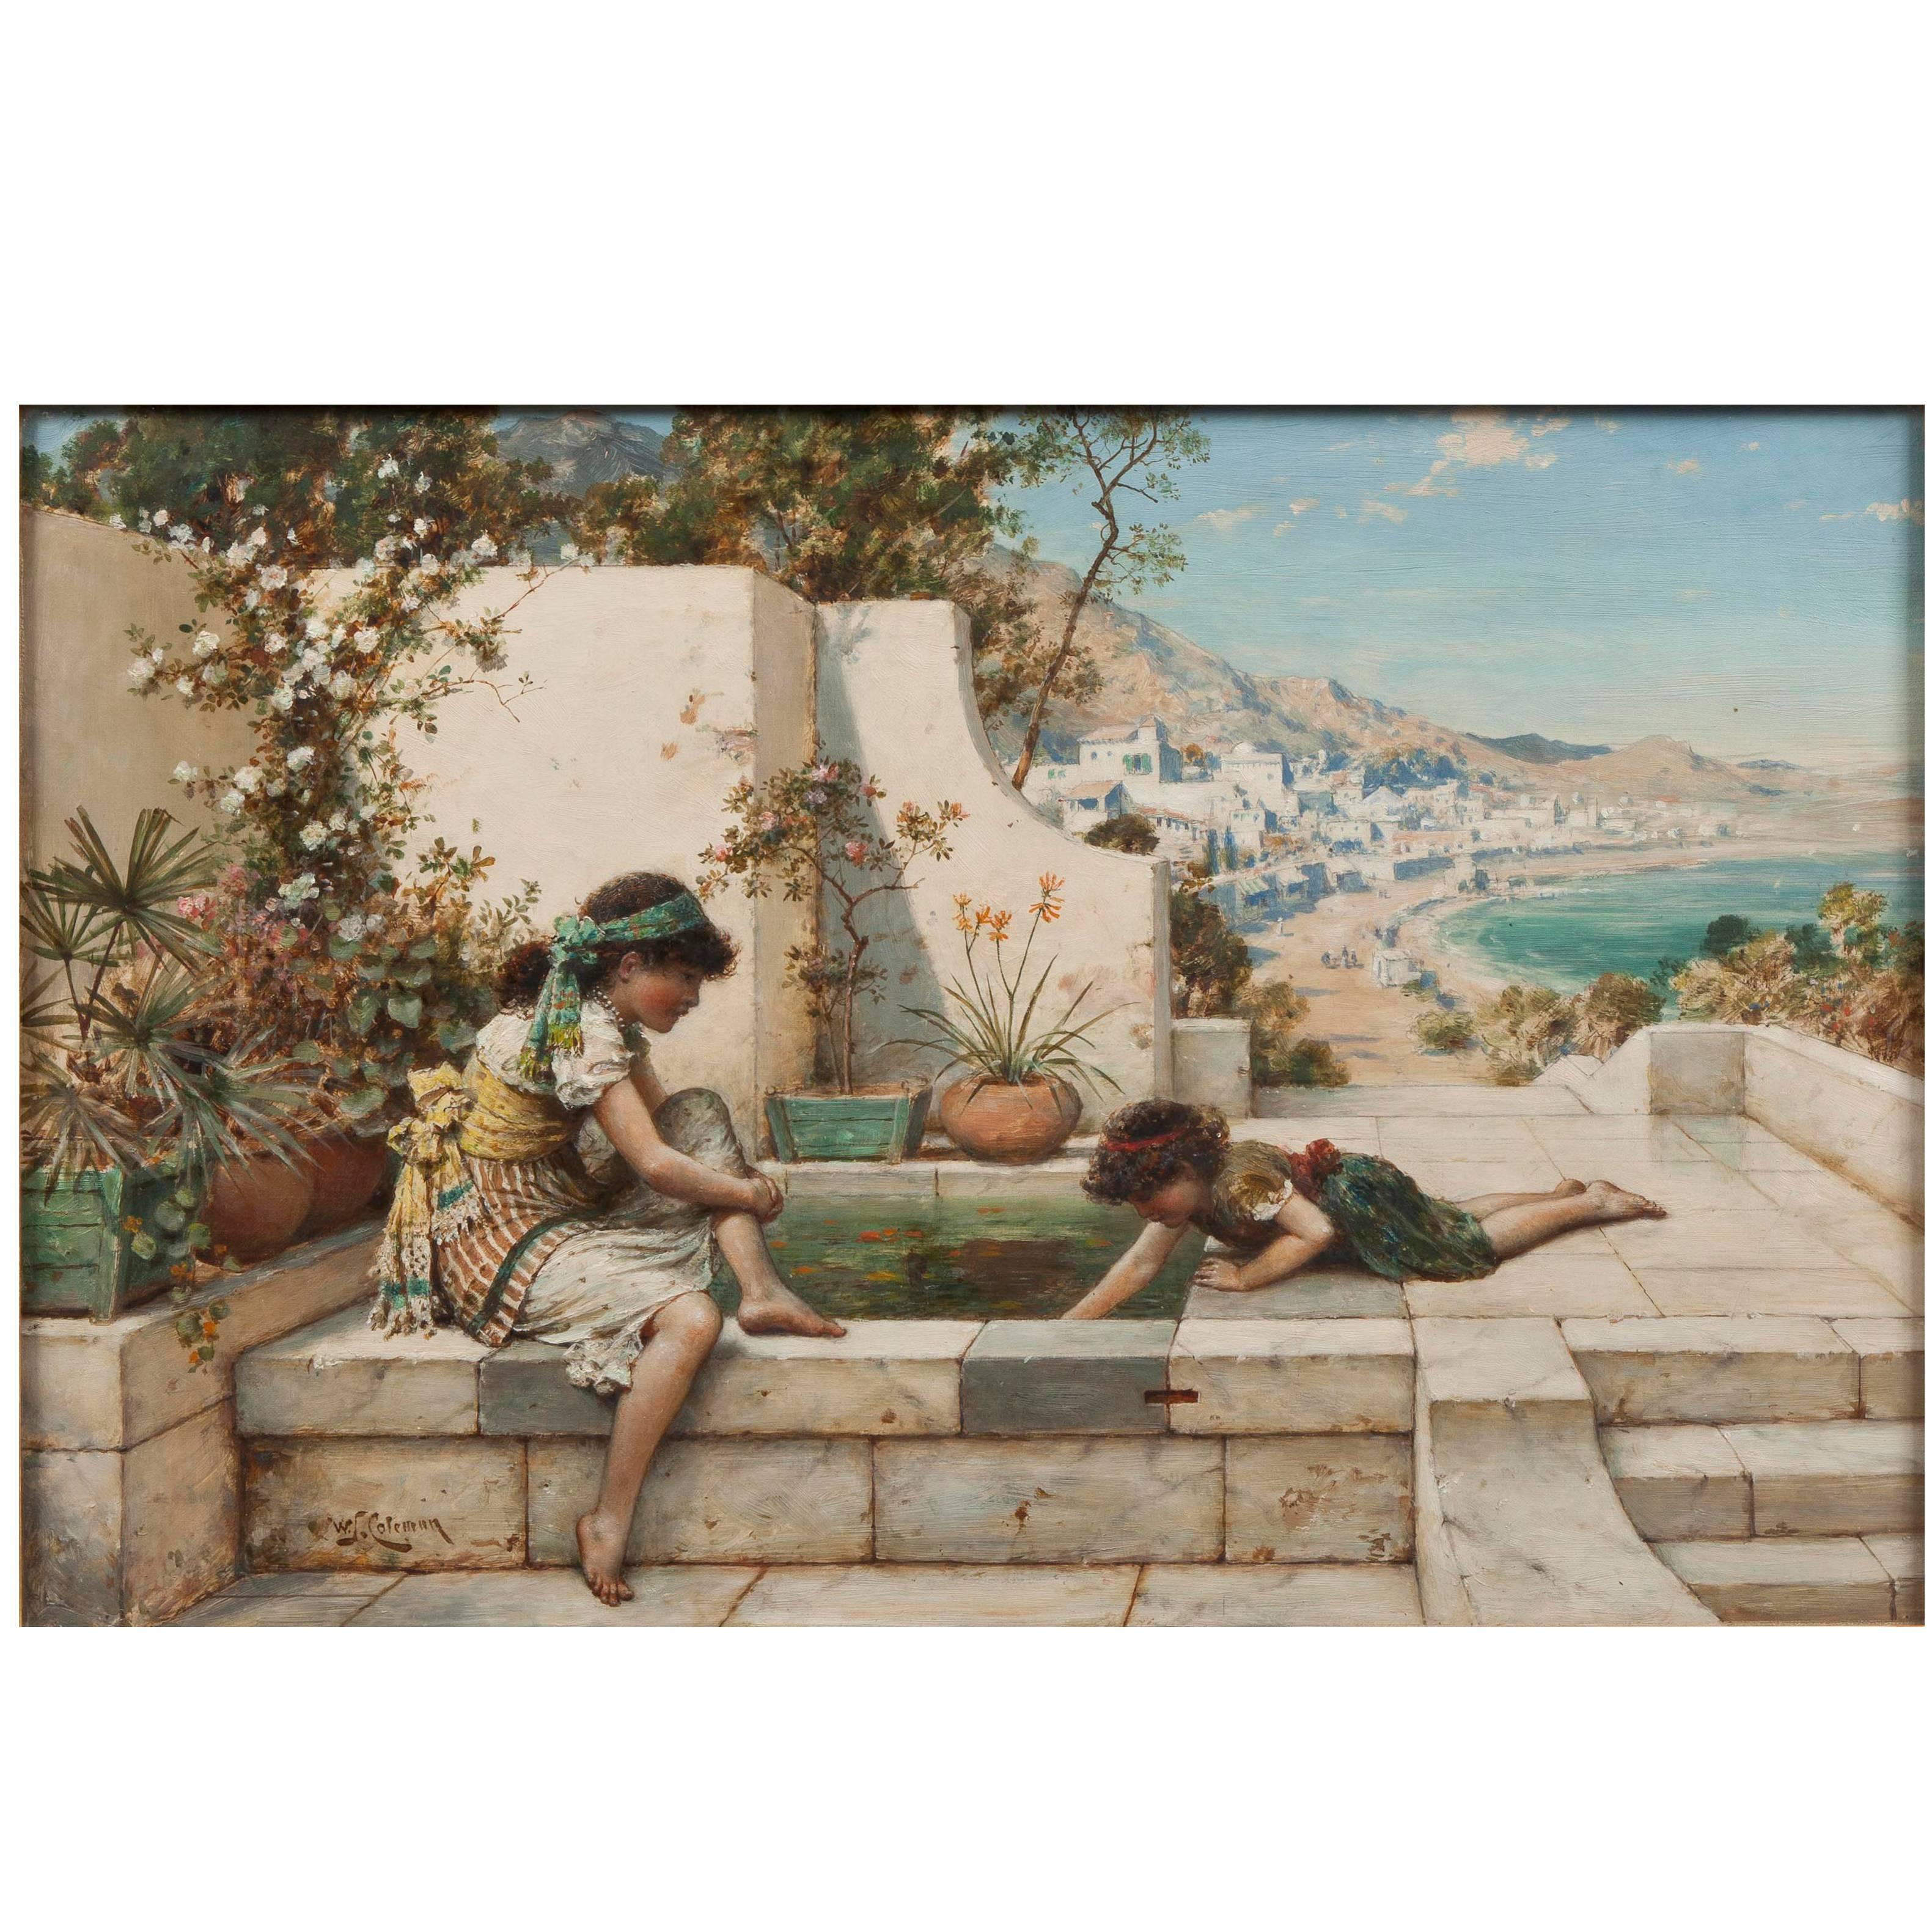 19th Century Painting 'Summer Reflections' by William Stephen Coleman